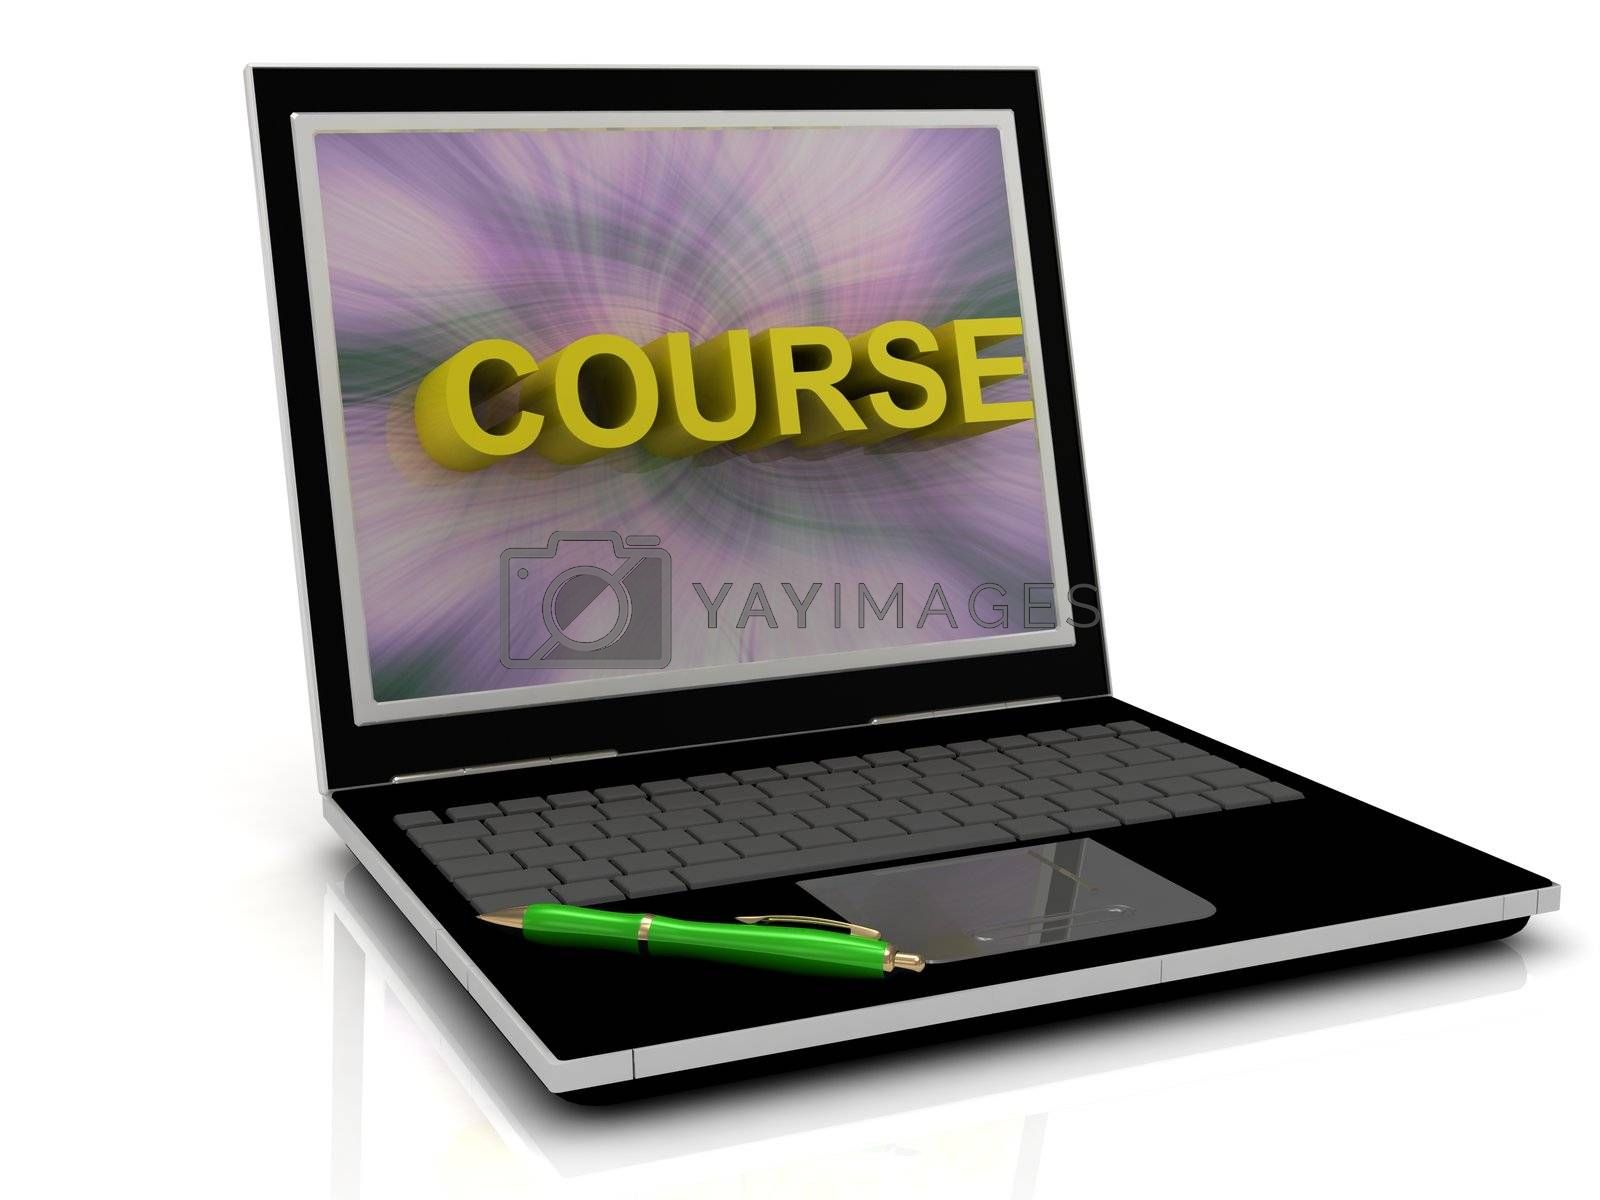 COURSE message on laptop screen in big letters. 3D illustration isolated on white background